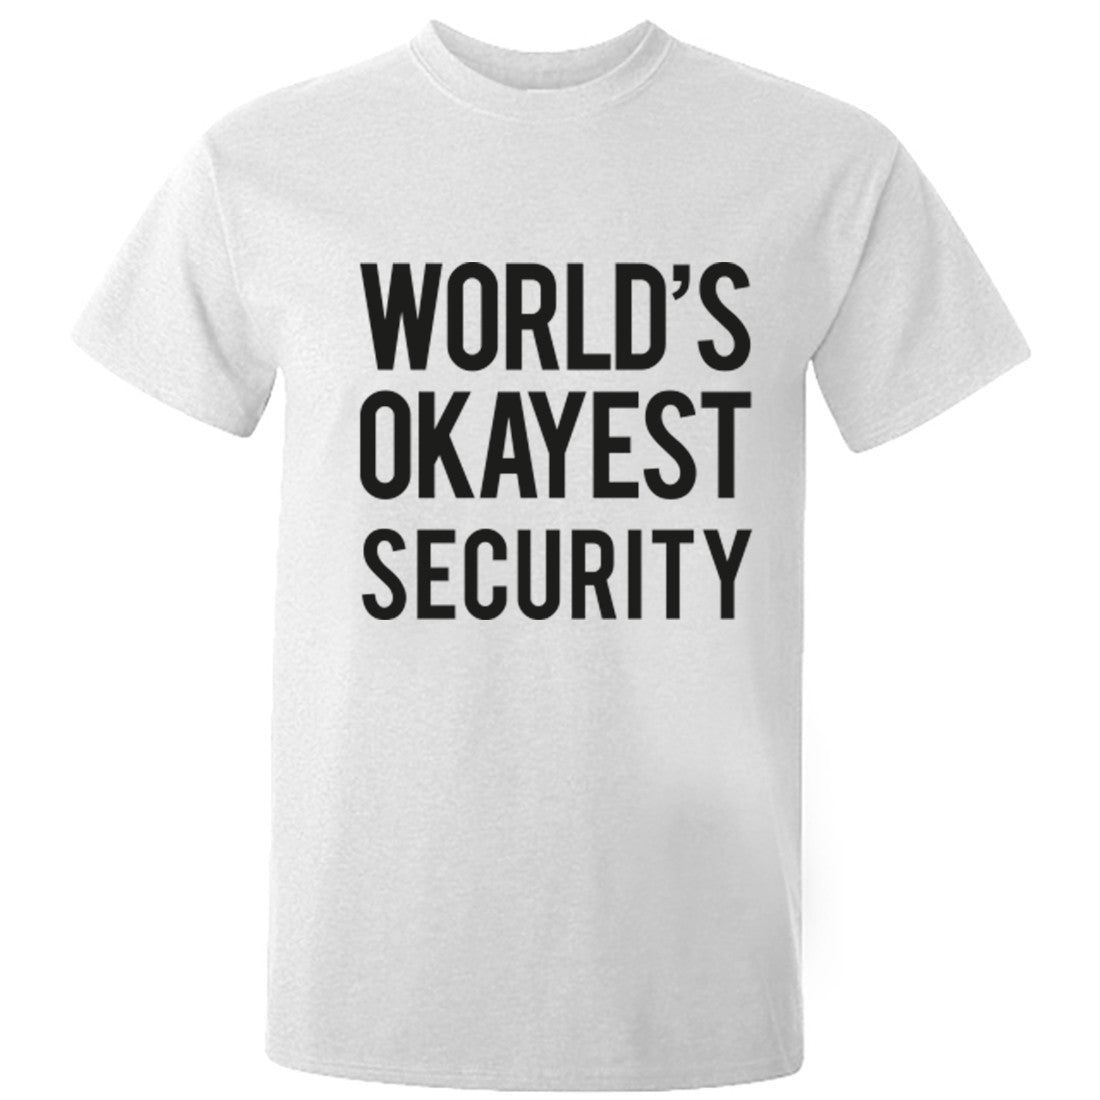 Worlds Okayest Security Unisex Fit T-Shirt K0504